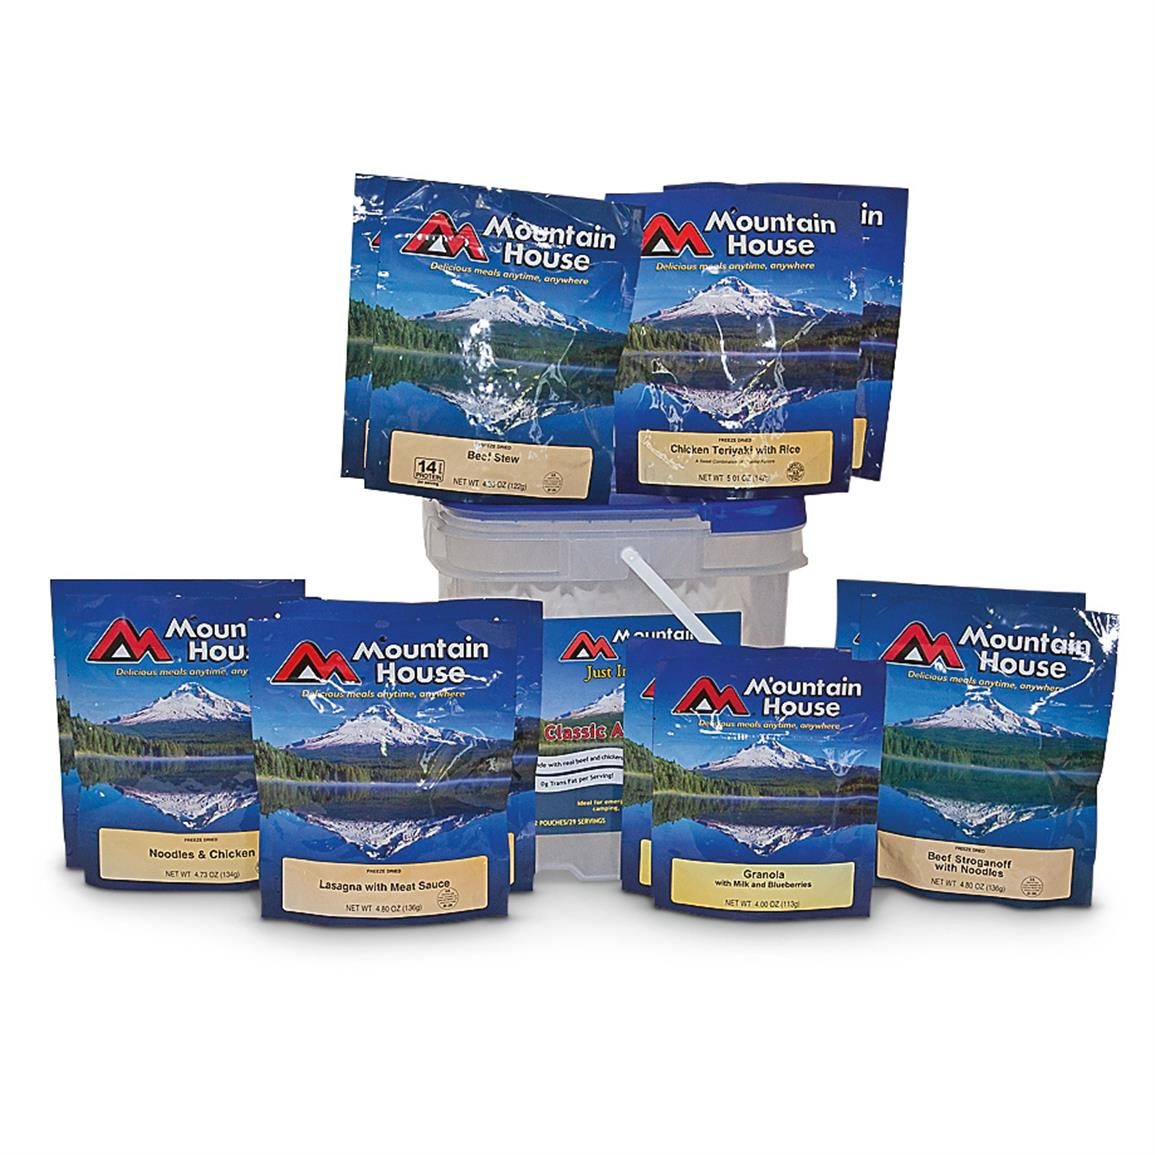 Mountain House Just In Case Classic Assortment Emergency Food Bucket, 29 Servings